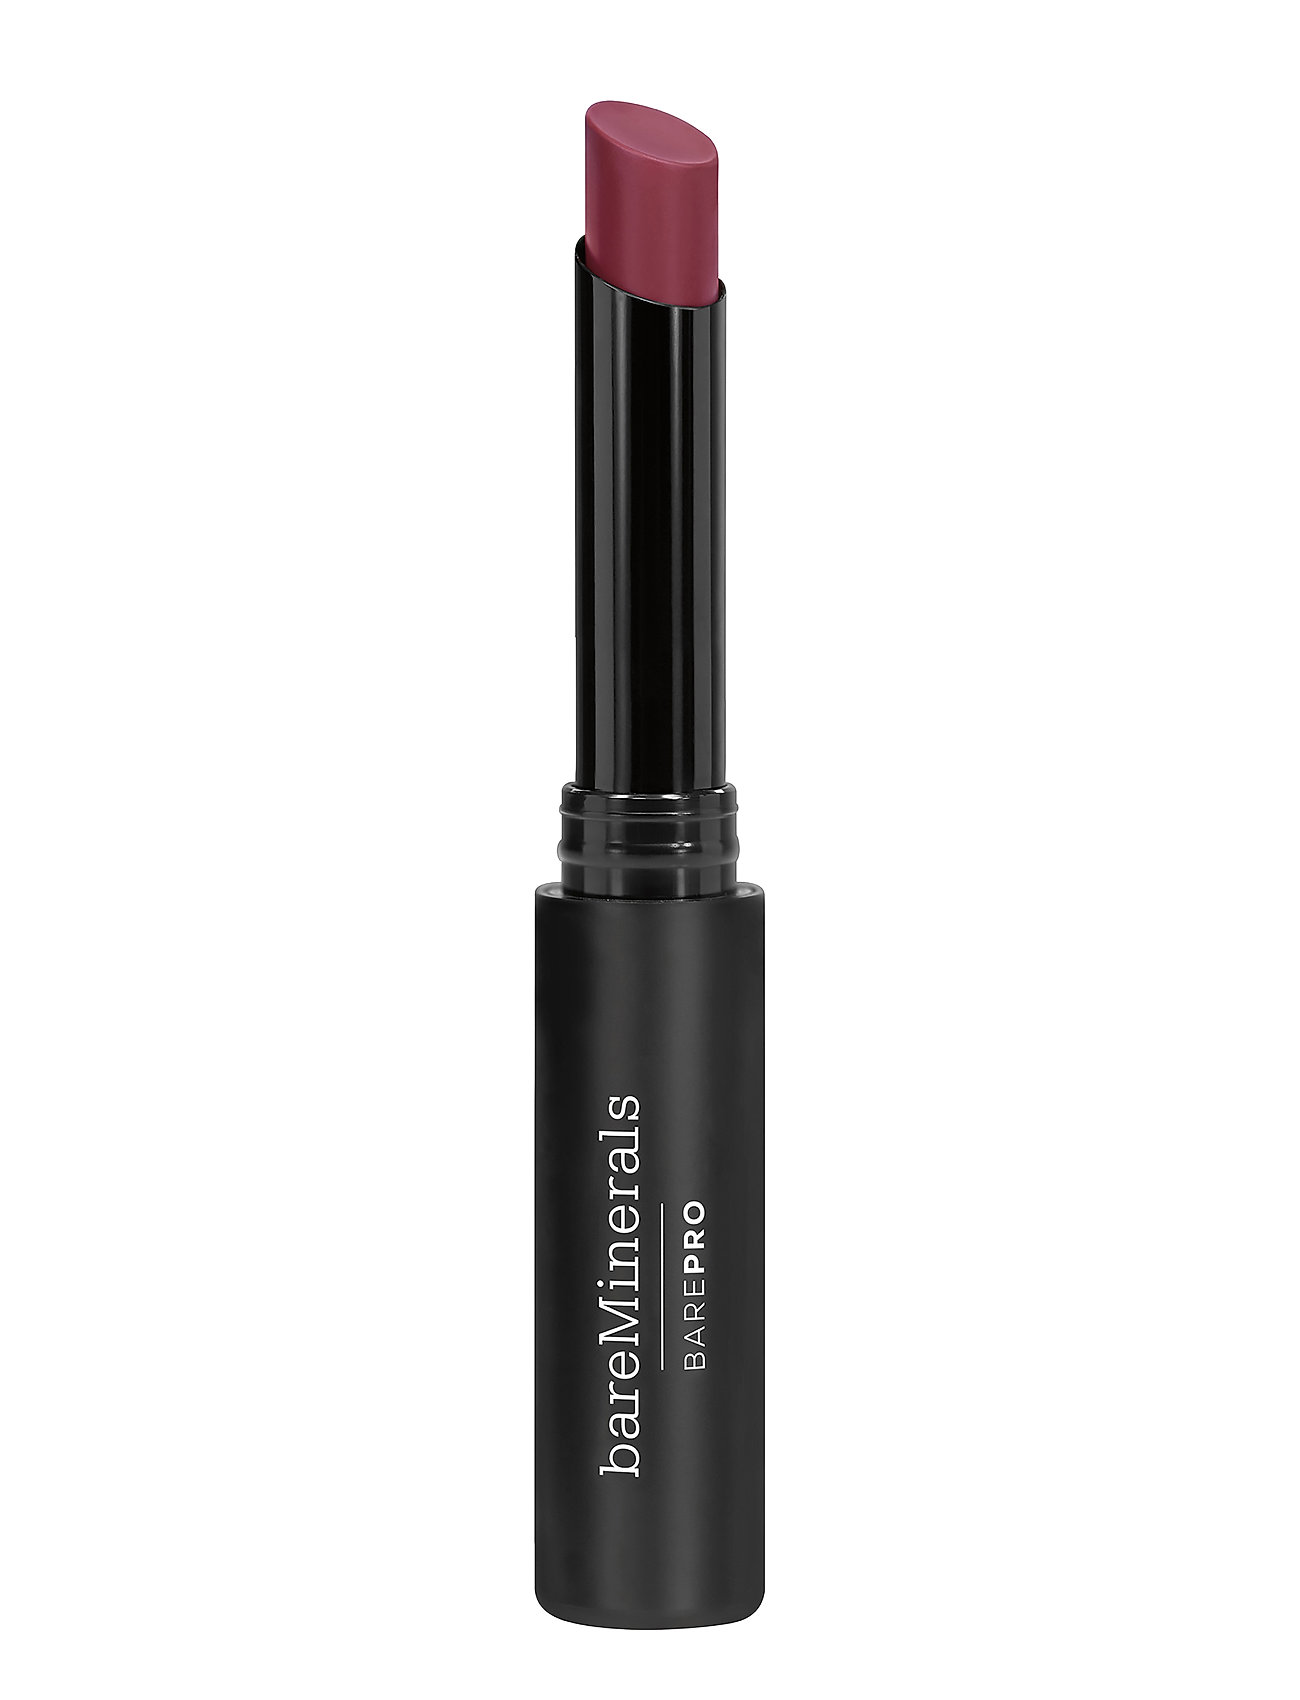 Image of Barepro Longwear Lipstick Boysenberry Læbestift Makeup Rød BareMinerals (3406186073)